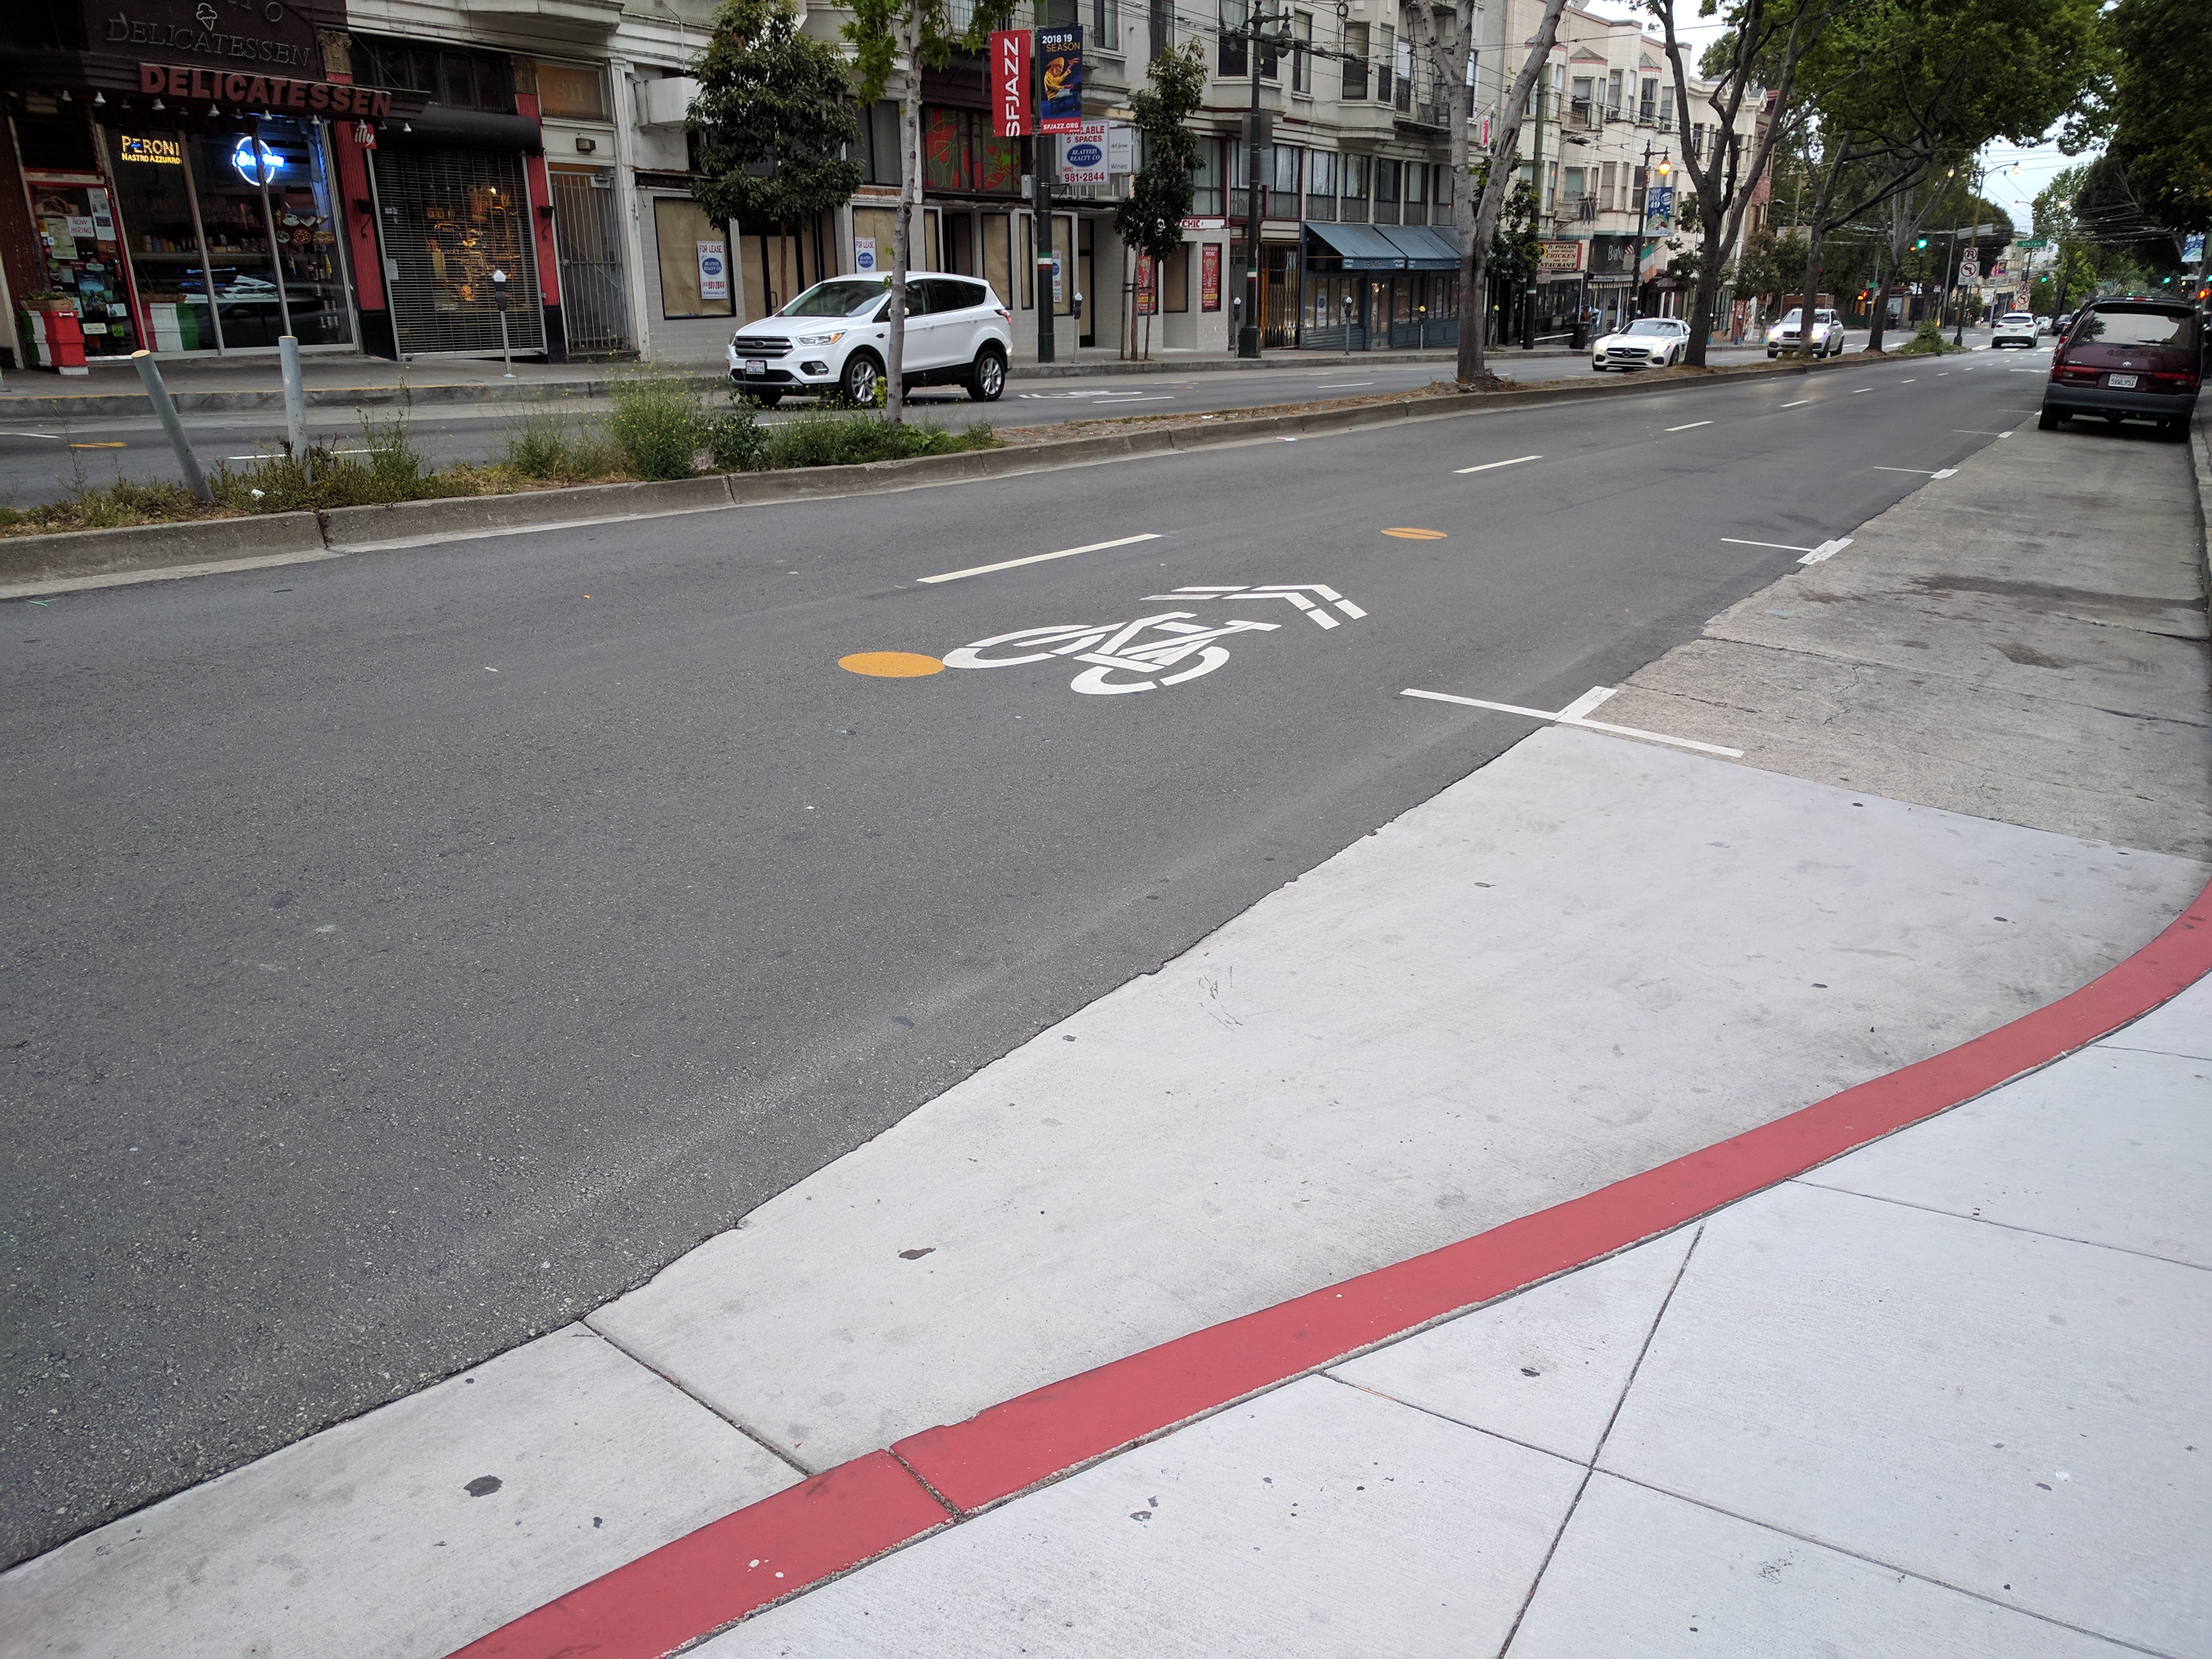 While SoMa is getting protected bike lanes, this is what passes for bike infra in North Beach. Photo: Streetsblog/Rudick